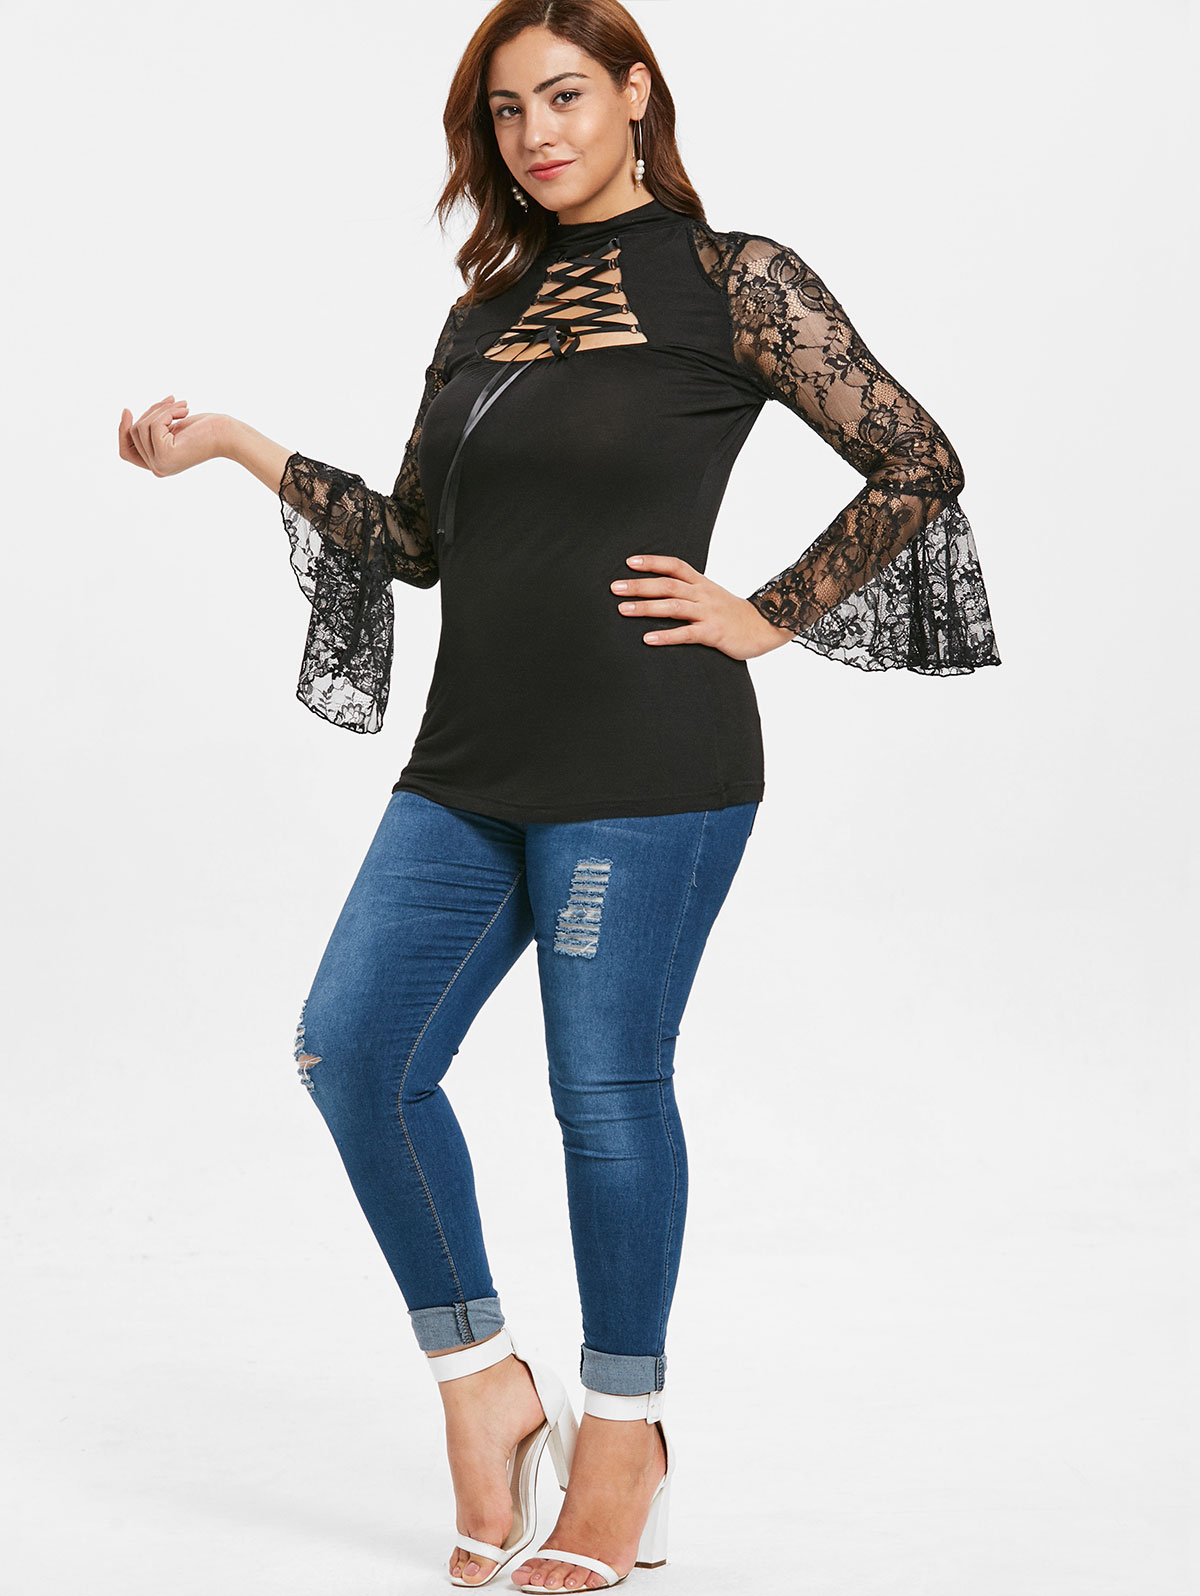 556aad00b6dc4 Wipalo Plus Size 5XL Sheer Lace Insert Cut Out Lace Up T Shirt Turtleneck Criss  Cross Flare Sleeve Casual Solid Ladies Tee Top-in T-Shirts from Women s ...